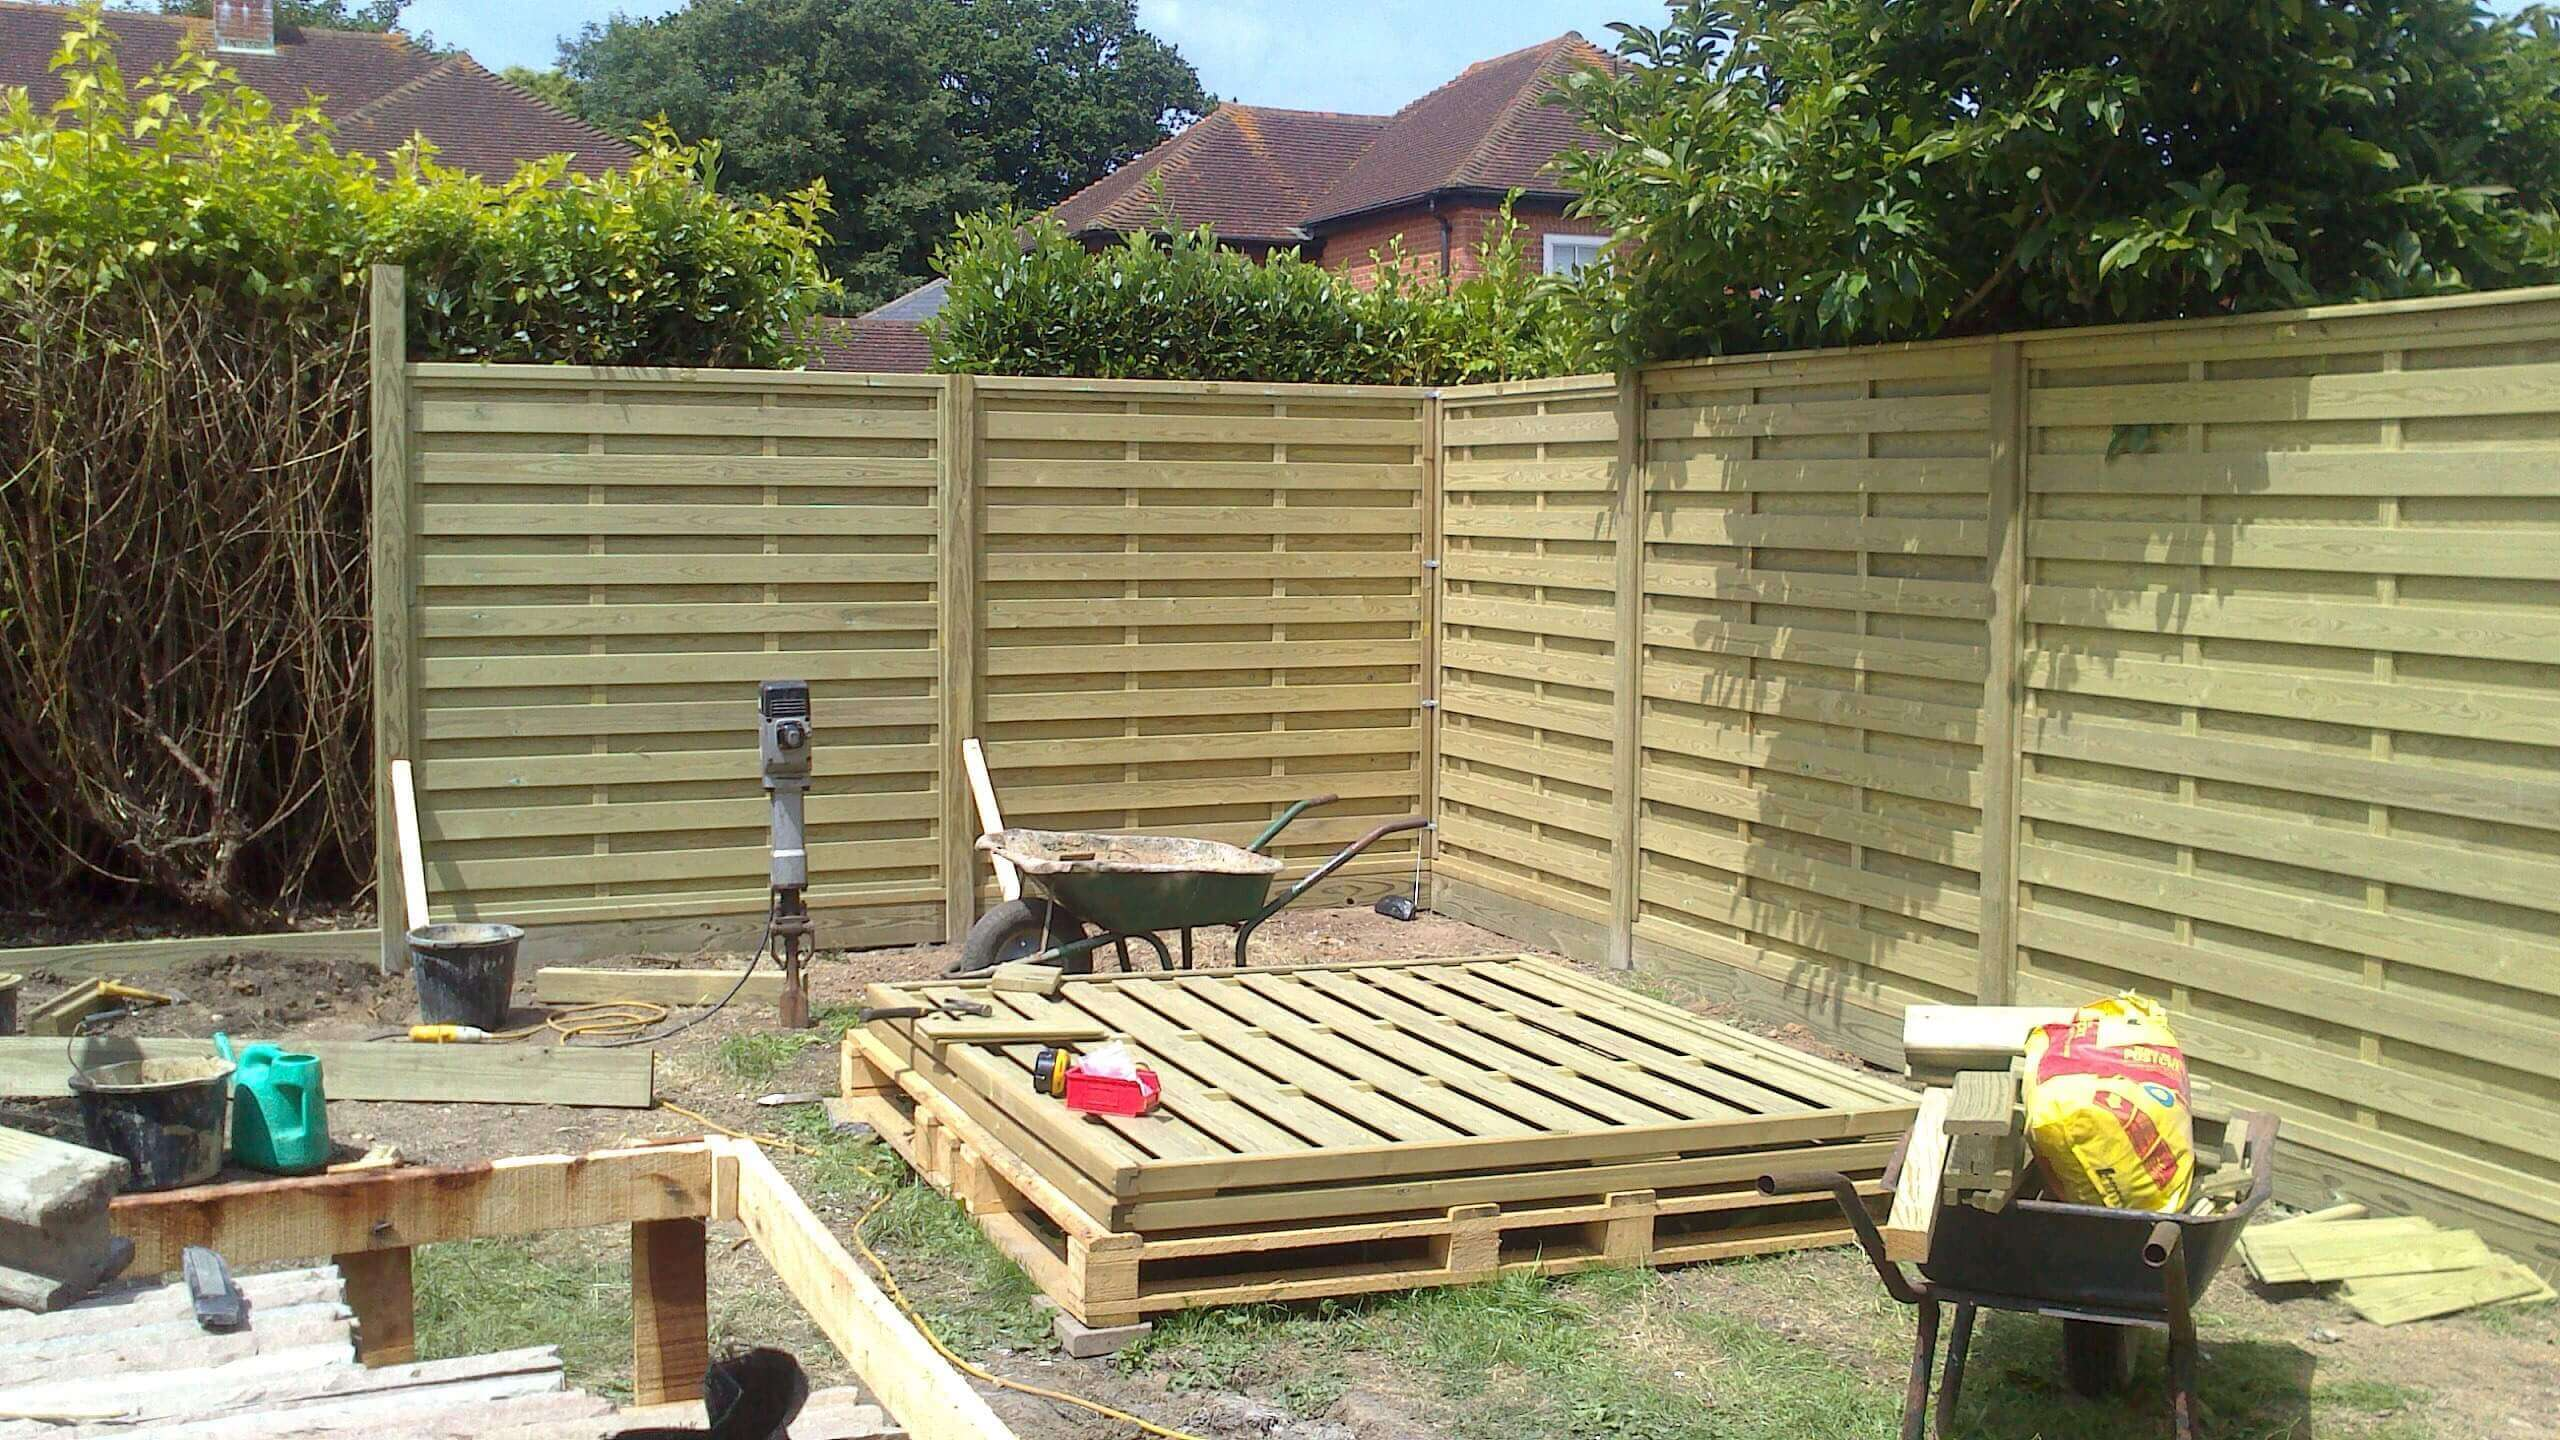 Installation of the new fence panels